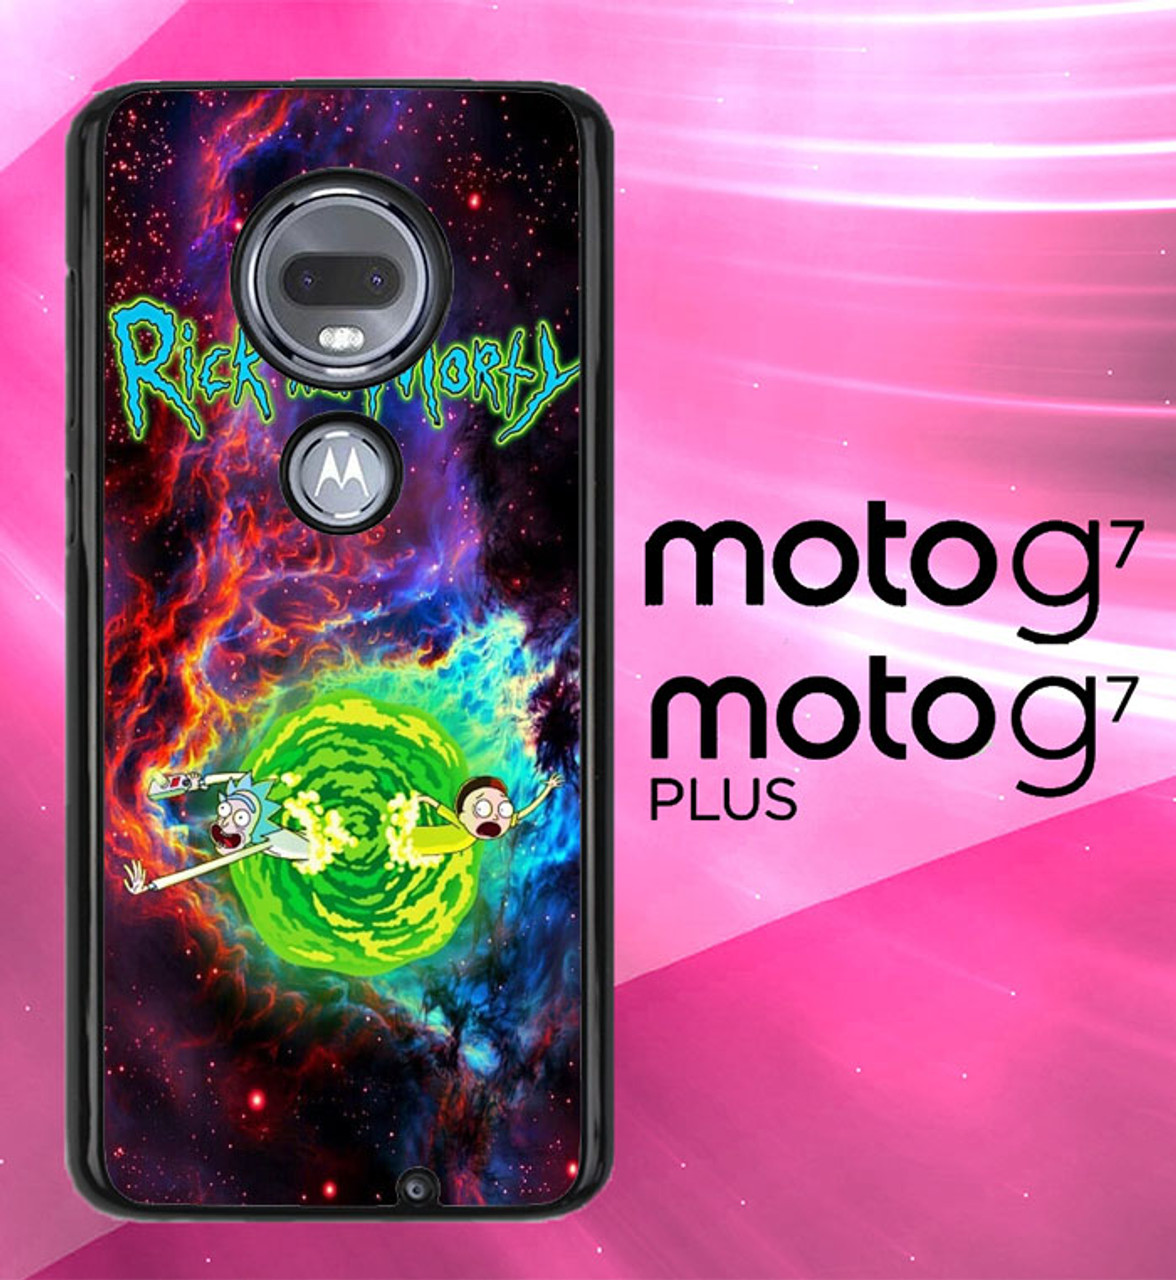 Rick And Morty Wallpaper X8922 Motorola Moto G7 G7 Plus Case